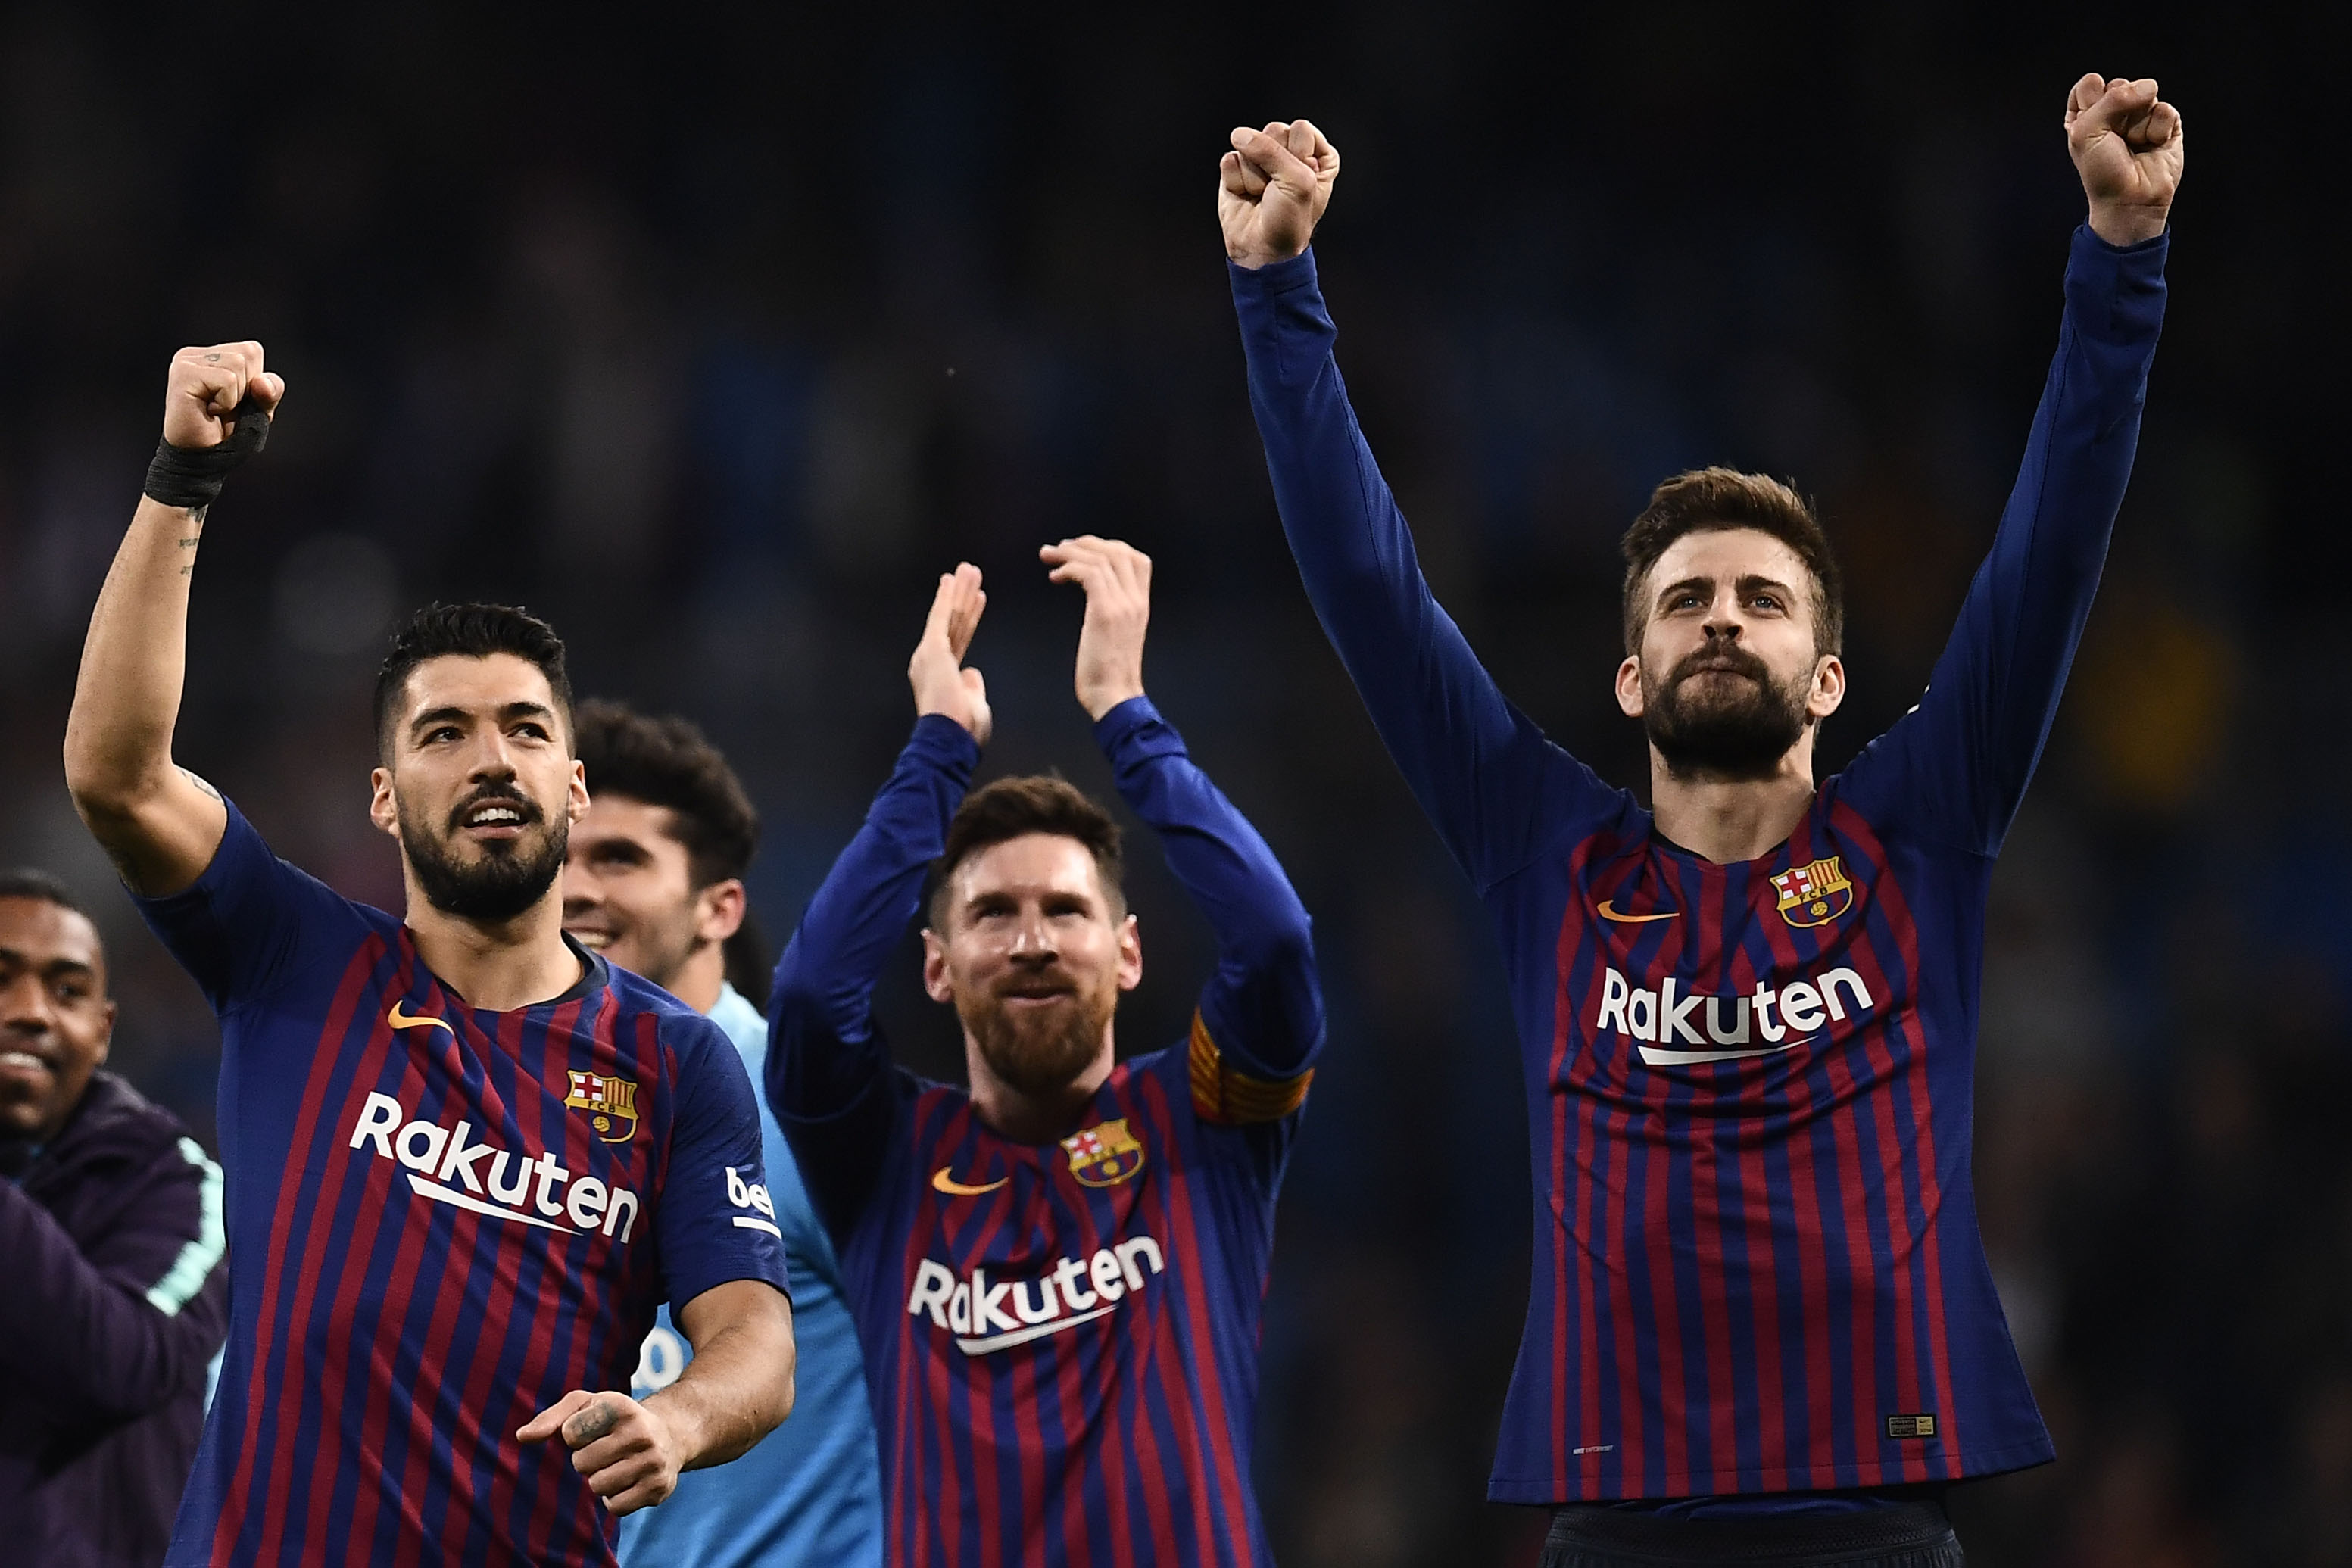 Barcelona's Uruguayan forward Luis Suarez (L), Barcelona's Argentinian forward Lionel Messi (C) and Barcelona's Spanish defender Gerard Pique celebrate their win at the end of the Spanish league football match between Real Madrid CF and FC Barcelona at the Santiago Bernabeu stadium in Madrid on March 2, 2019. (Photo by OSCAR DEL POZO / AFP)